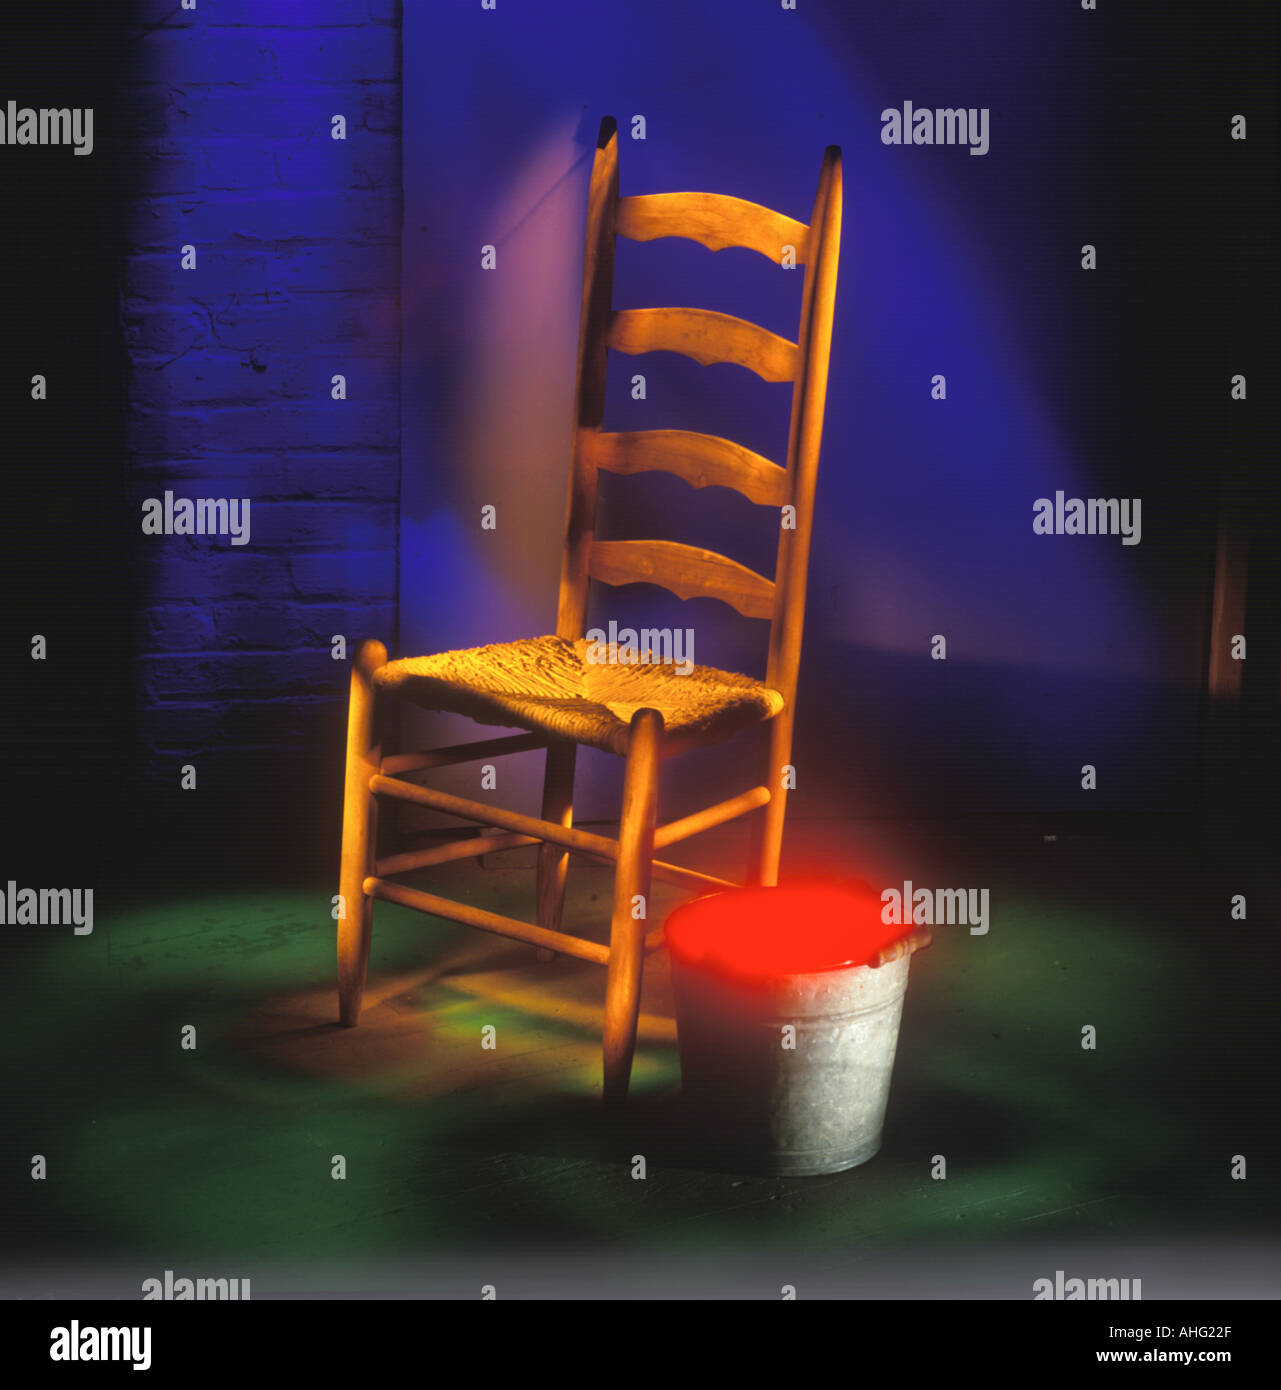 Glowing Chair and Bucket - Stock Image